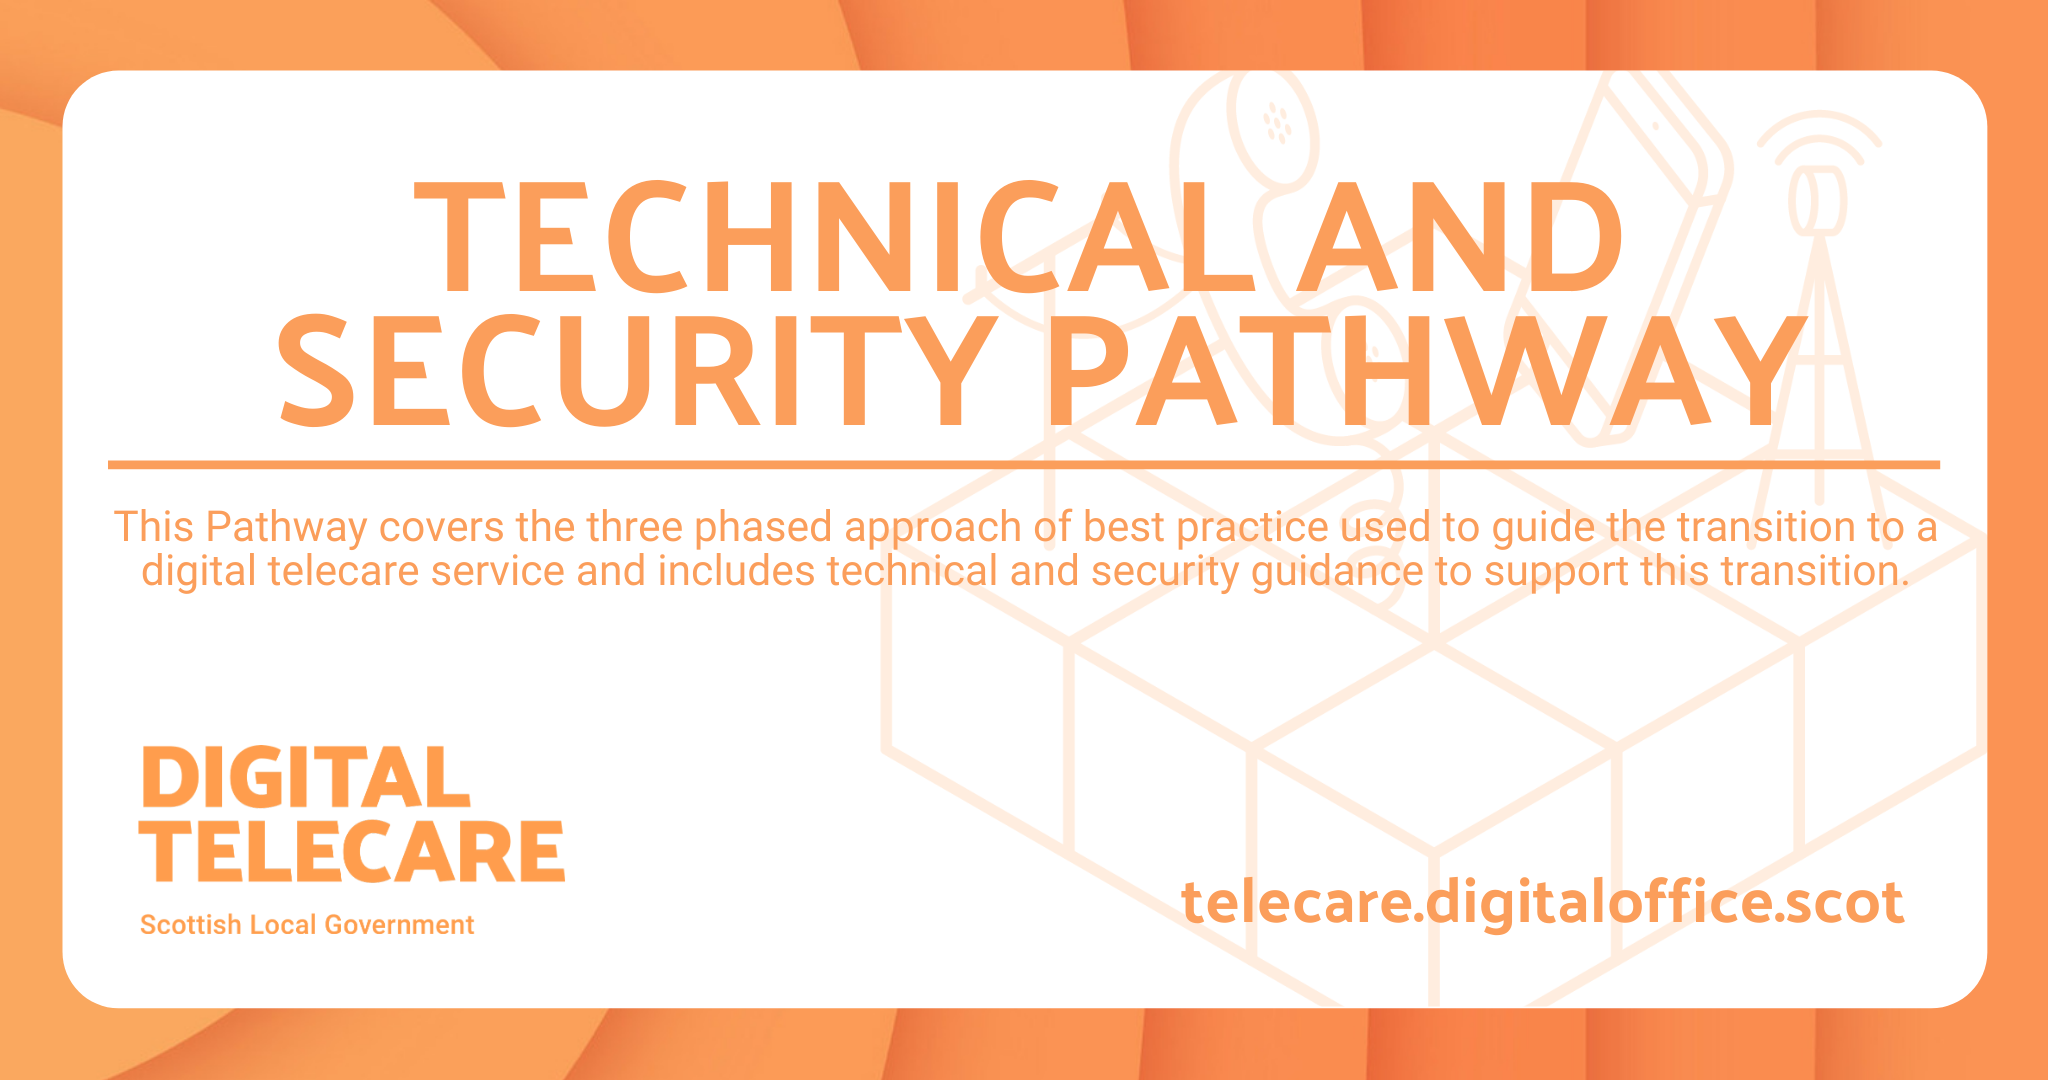 LAUNCH: TECHNICAL AND SECURITY PATHWAY